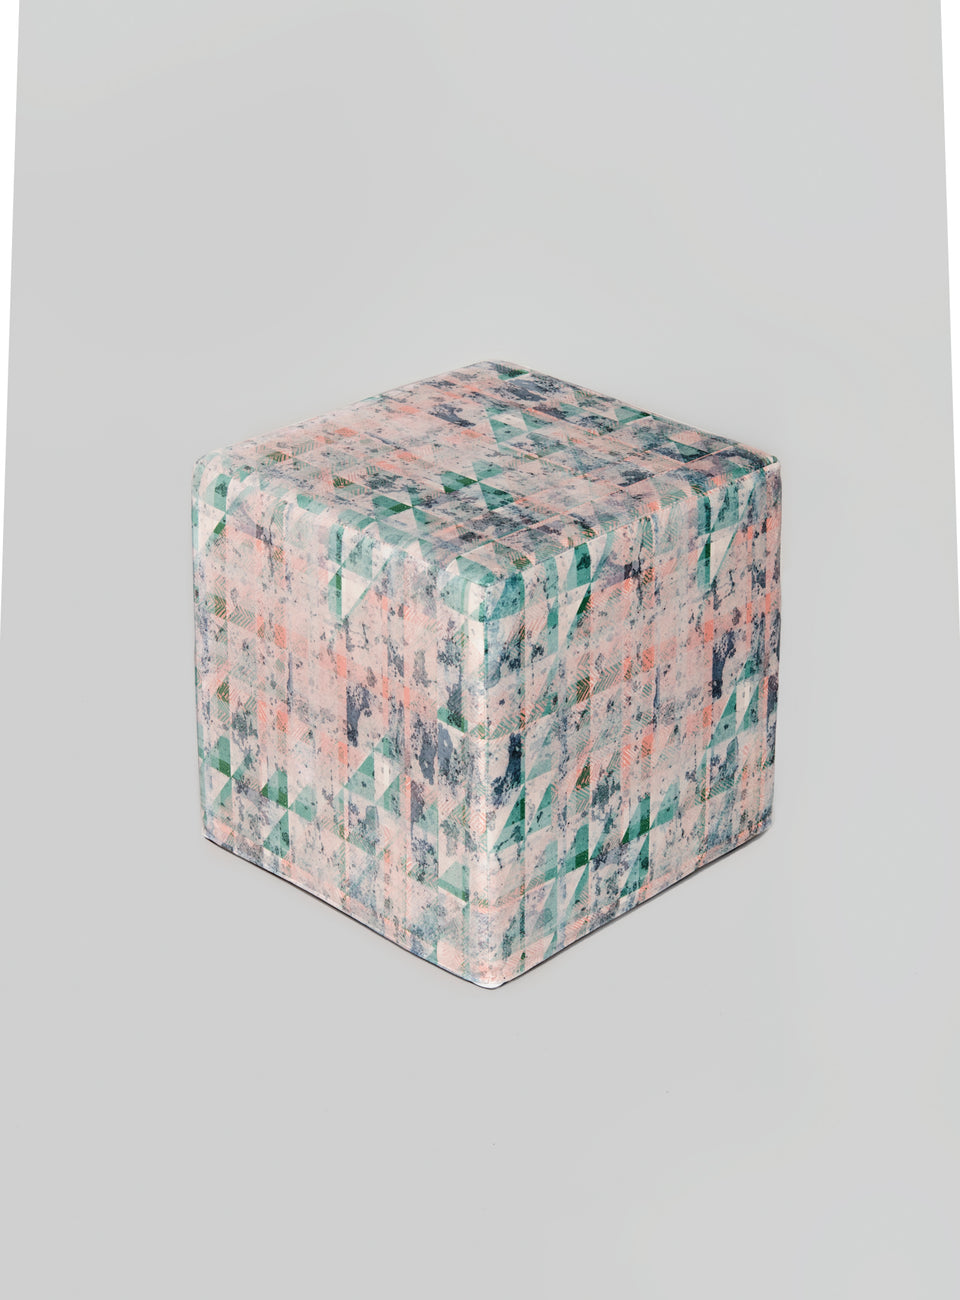 Cube - Altered Repetition